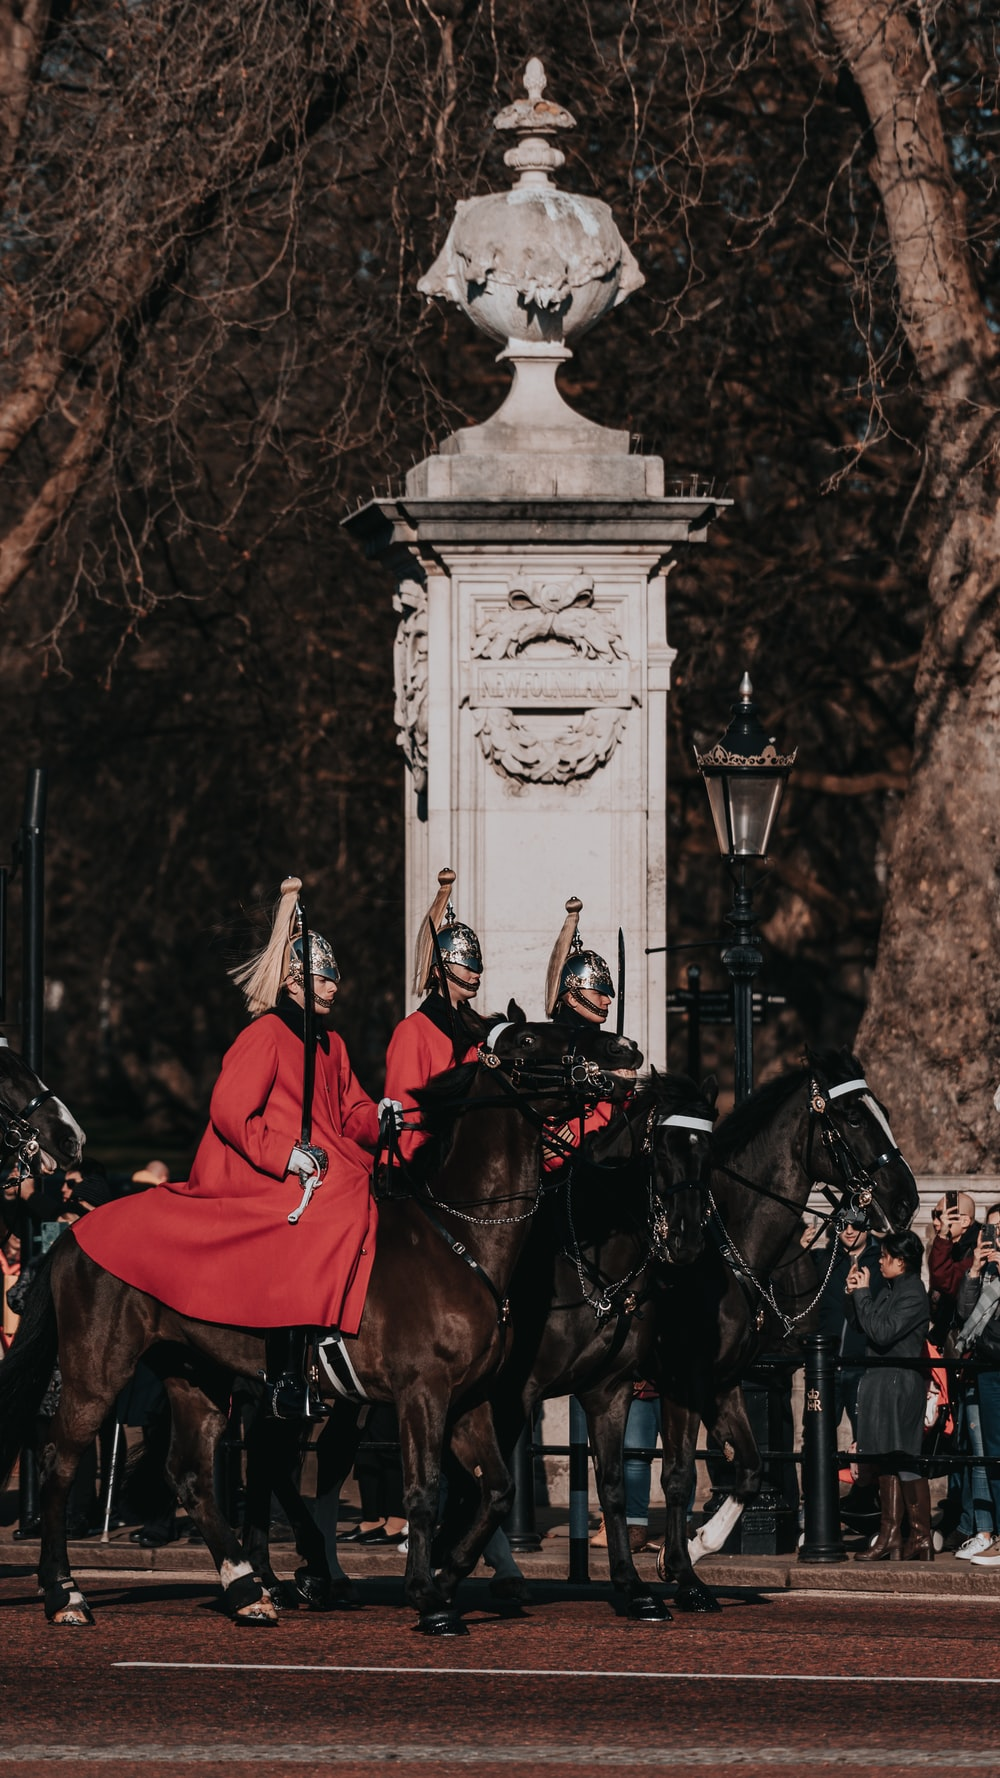 person in red coat riding horse